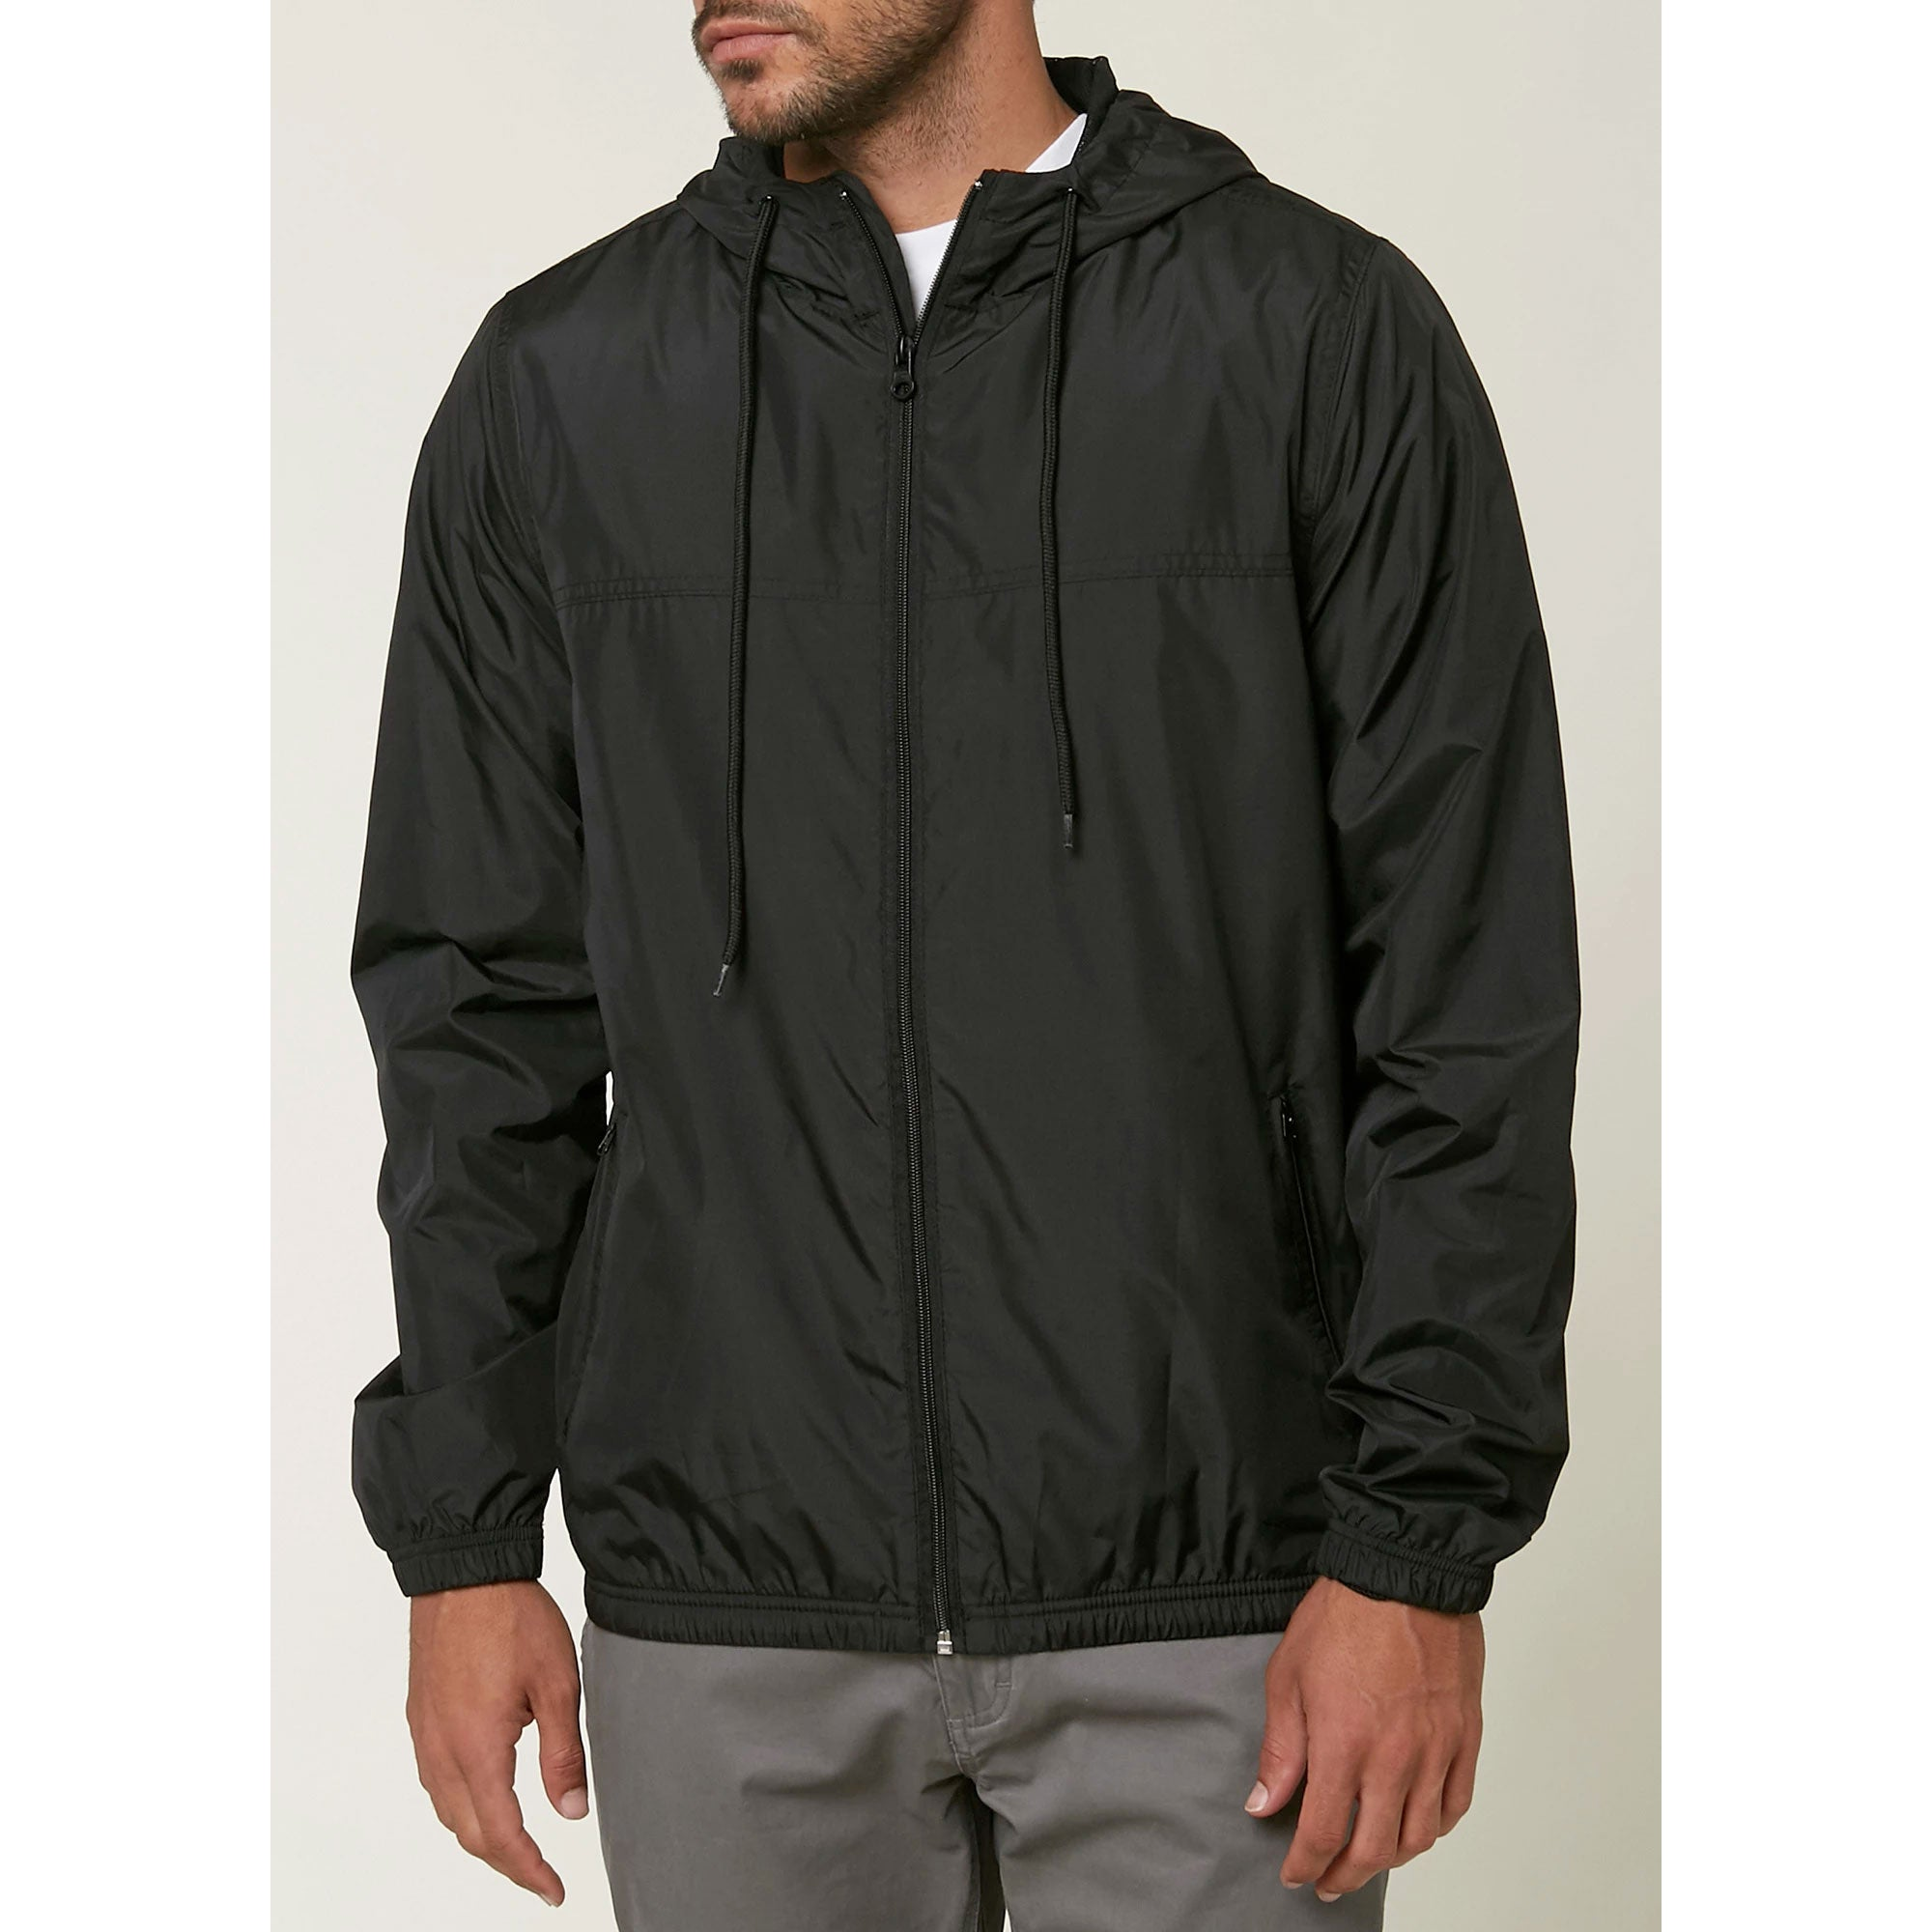 O'Neill Del Ray Men's Windbreaker Jacket